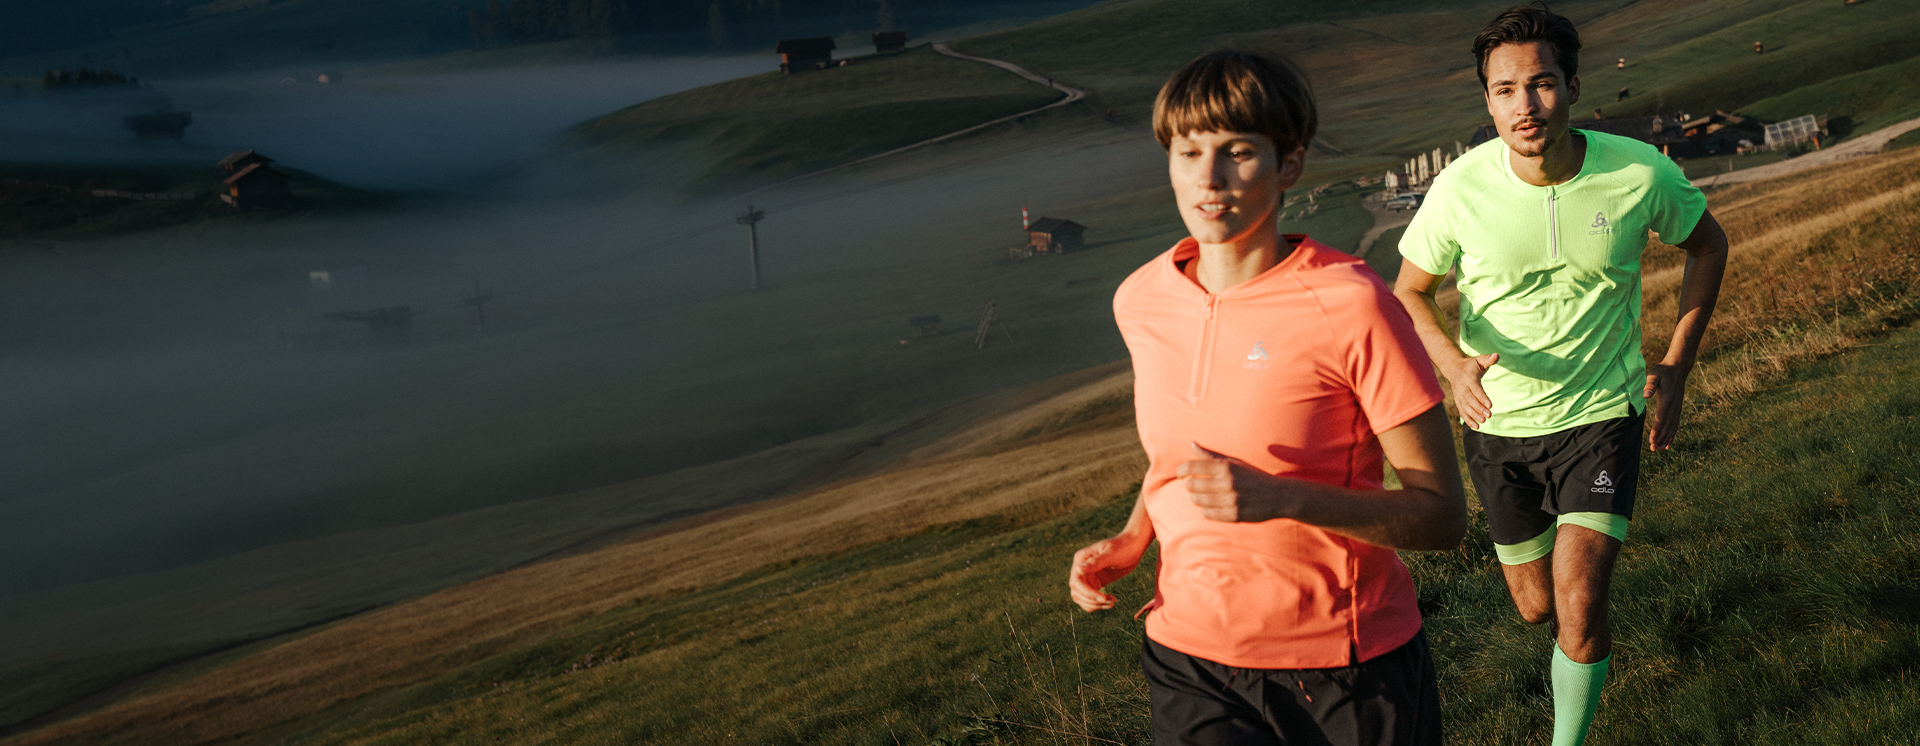 Functional performance wear made for off-road running.